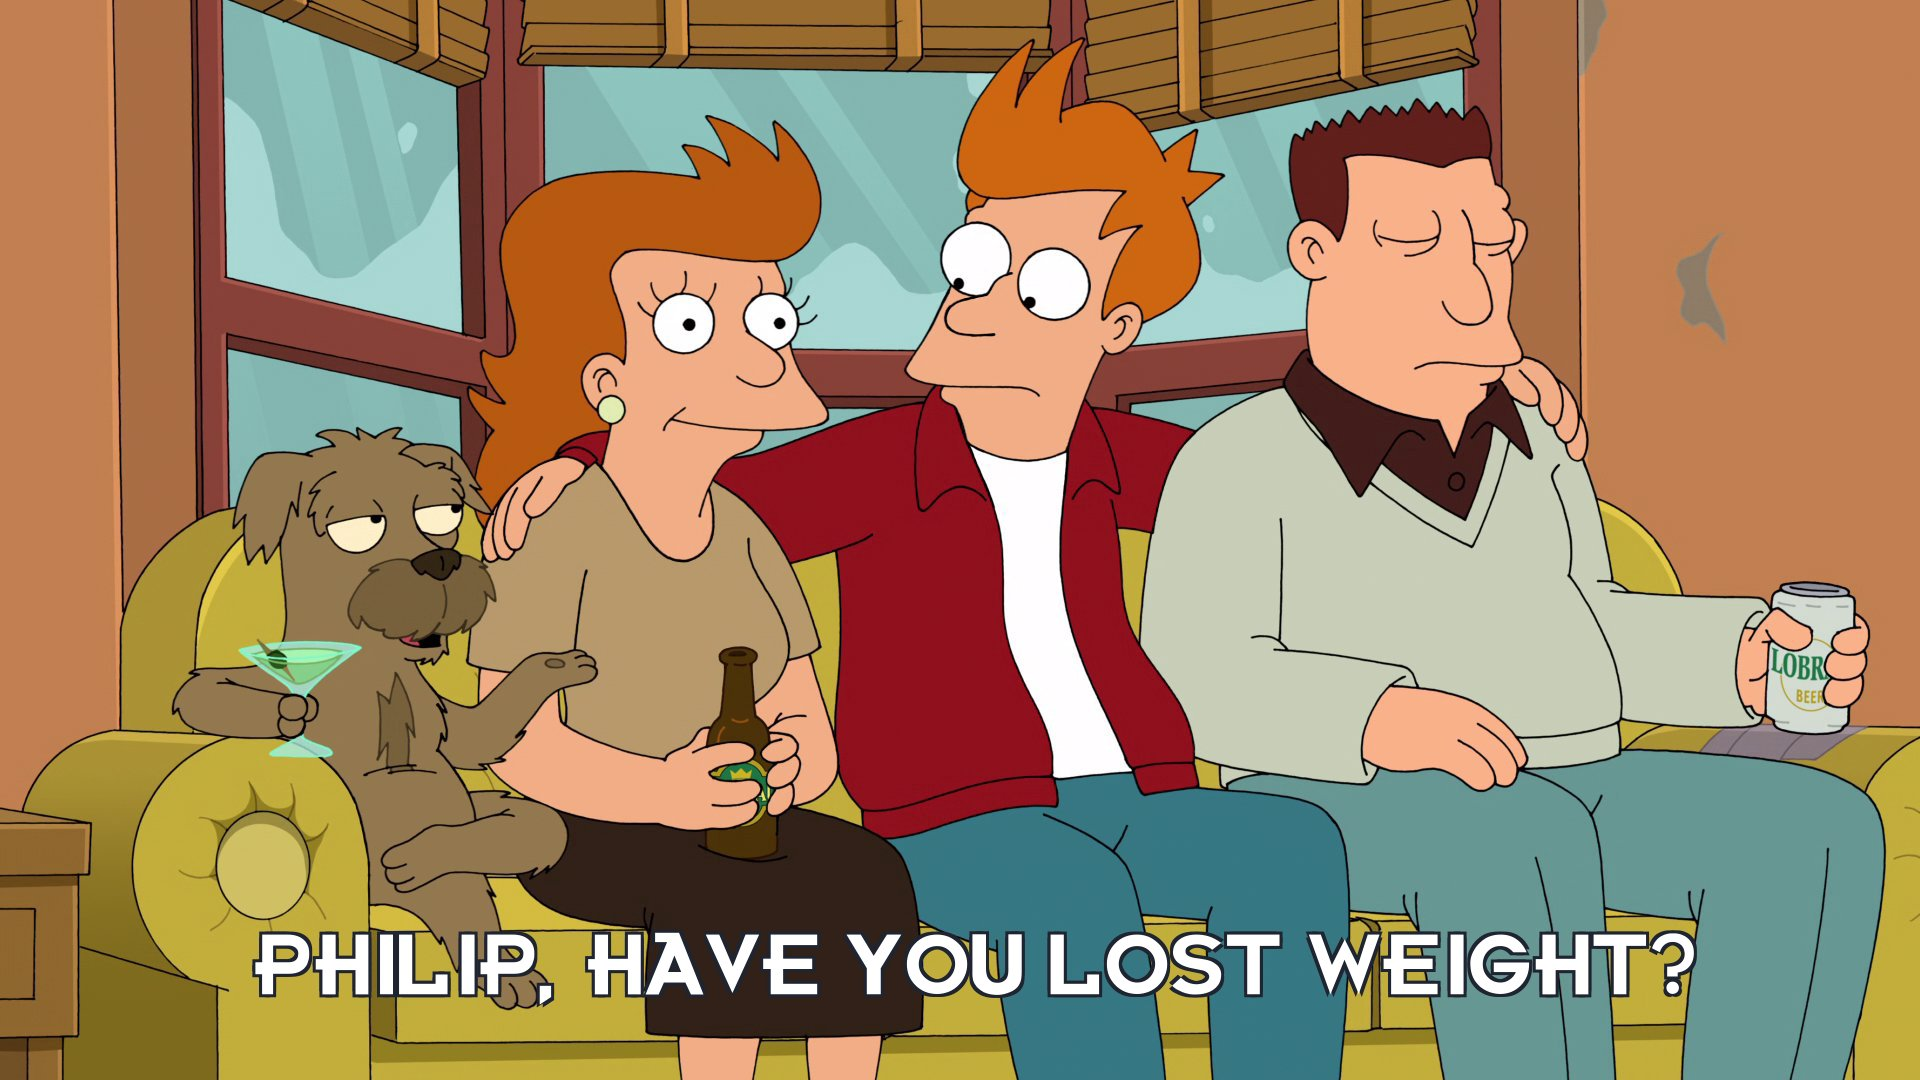 Seymour: Philip, have you lost weight?